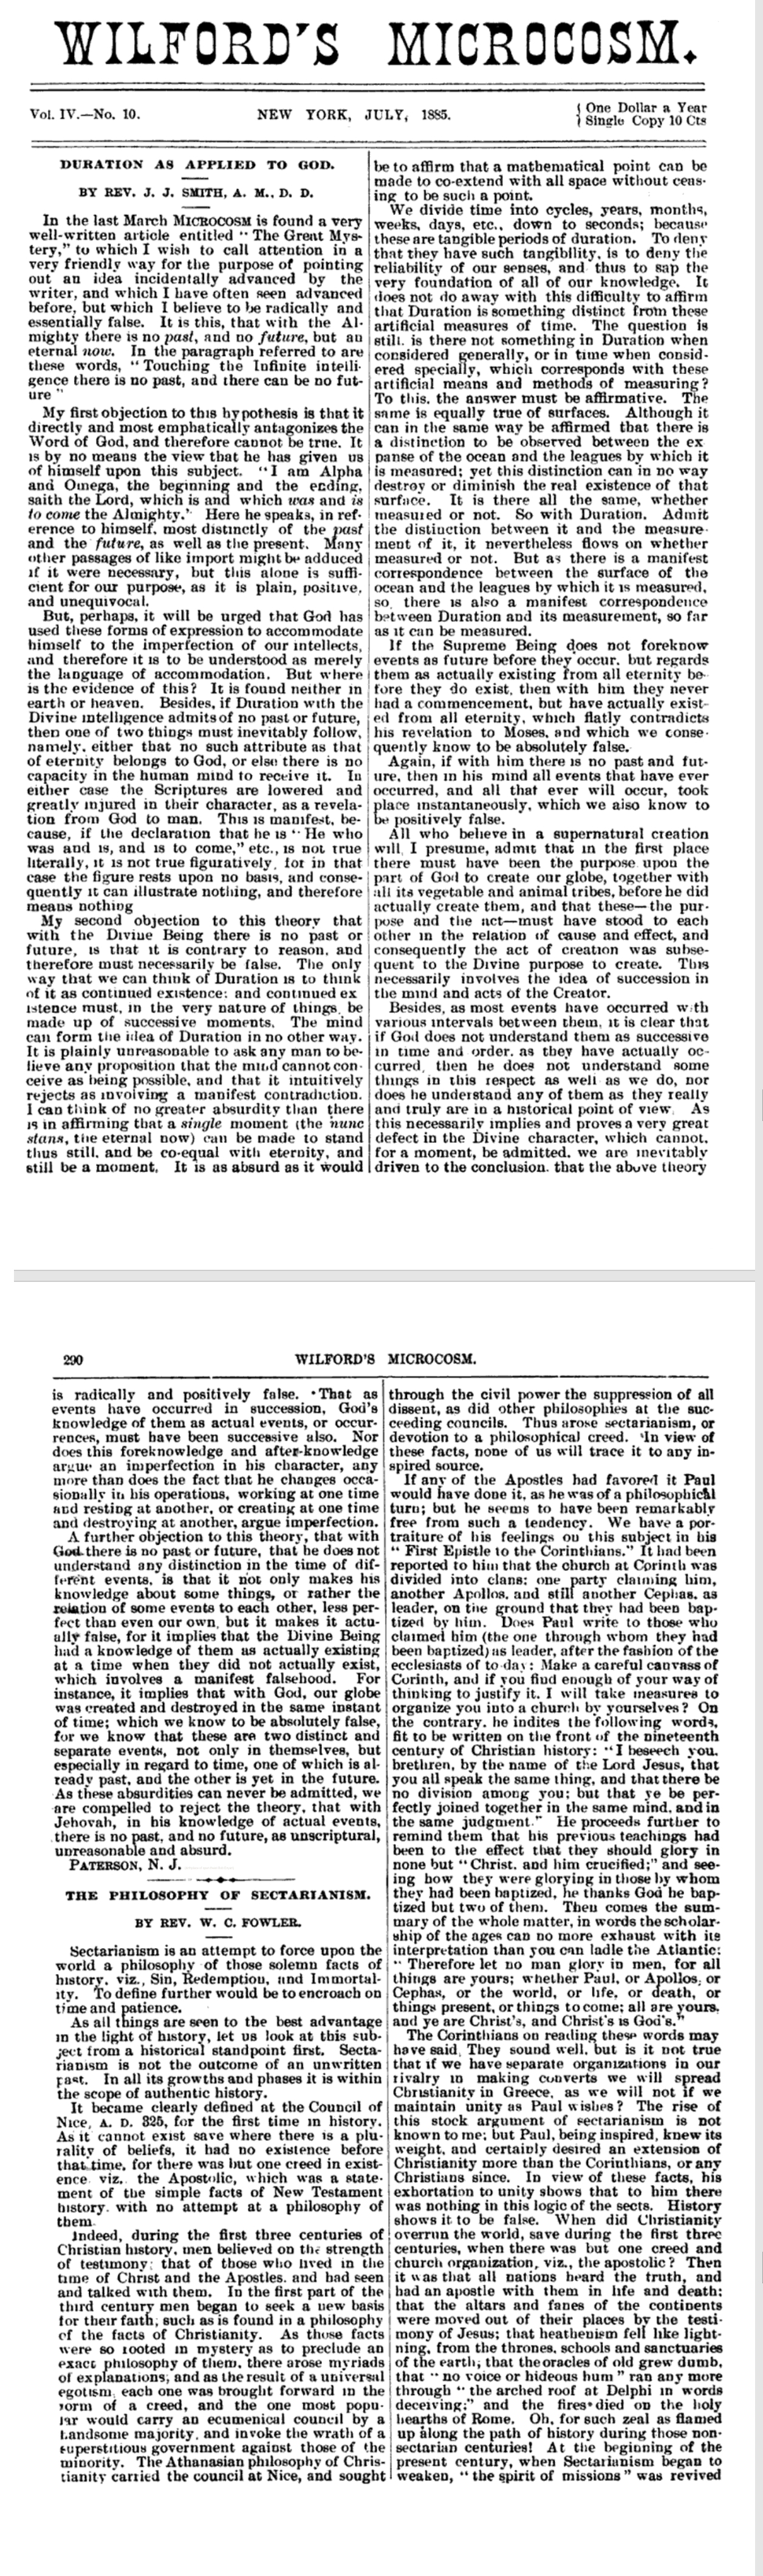 Scan of 1885 article, Duration as Applied to God by Rev. J. J. Smith